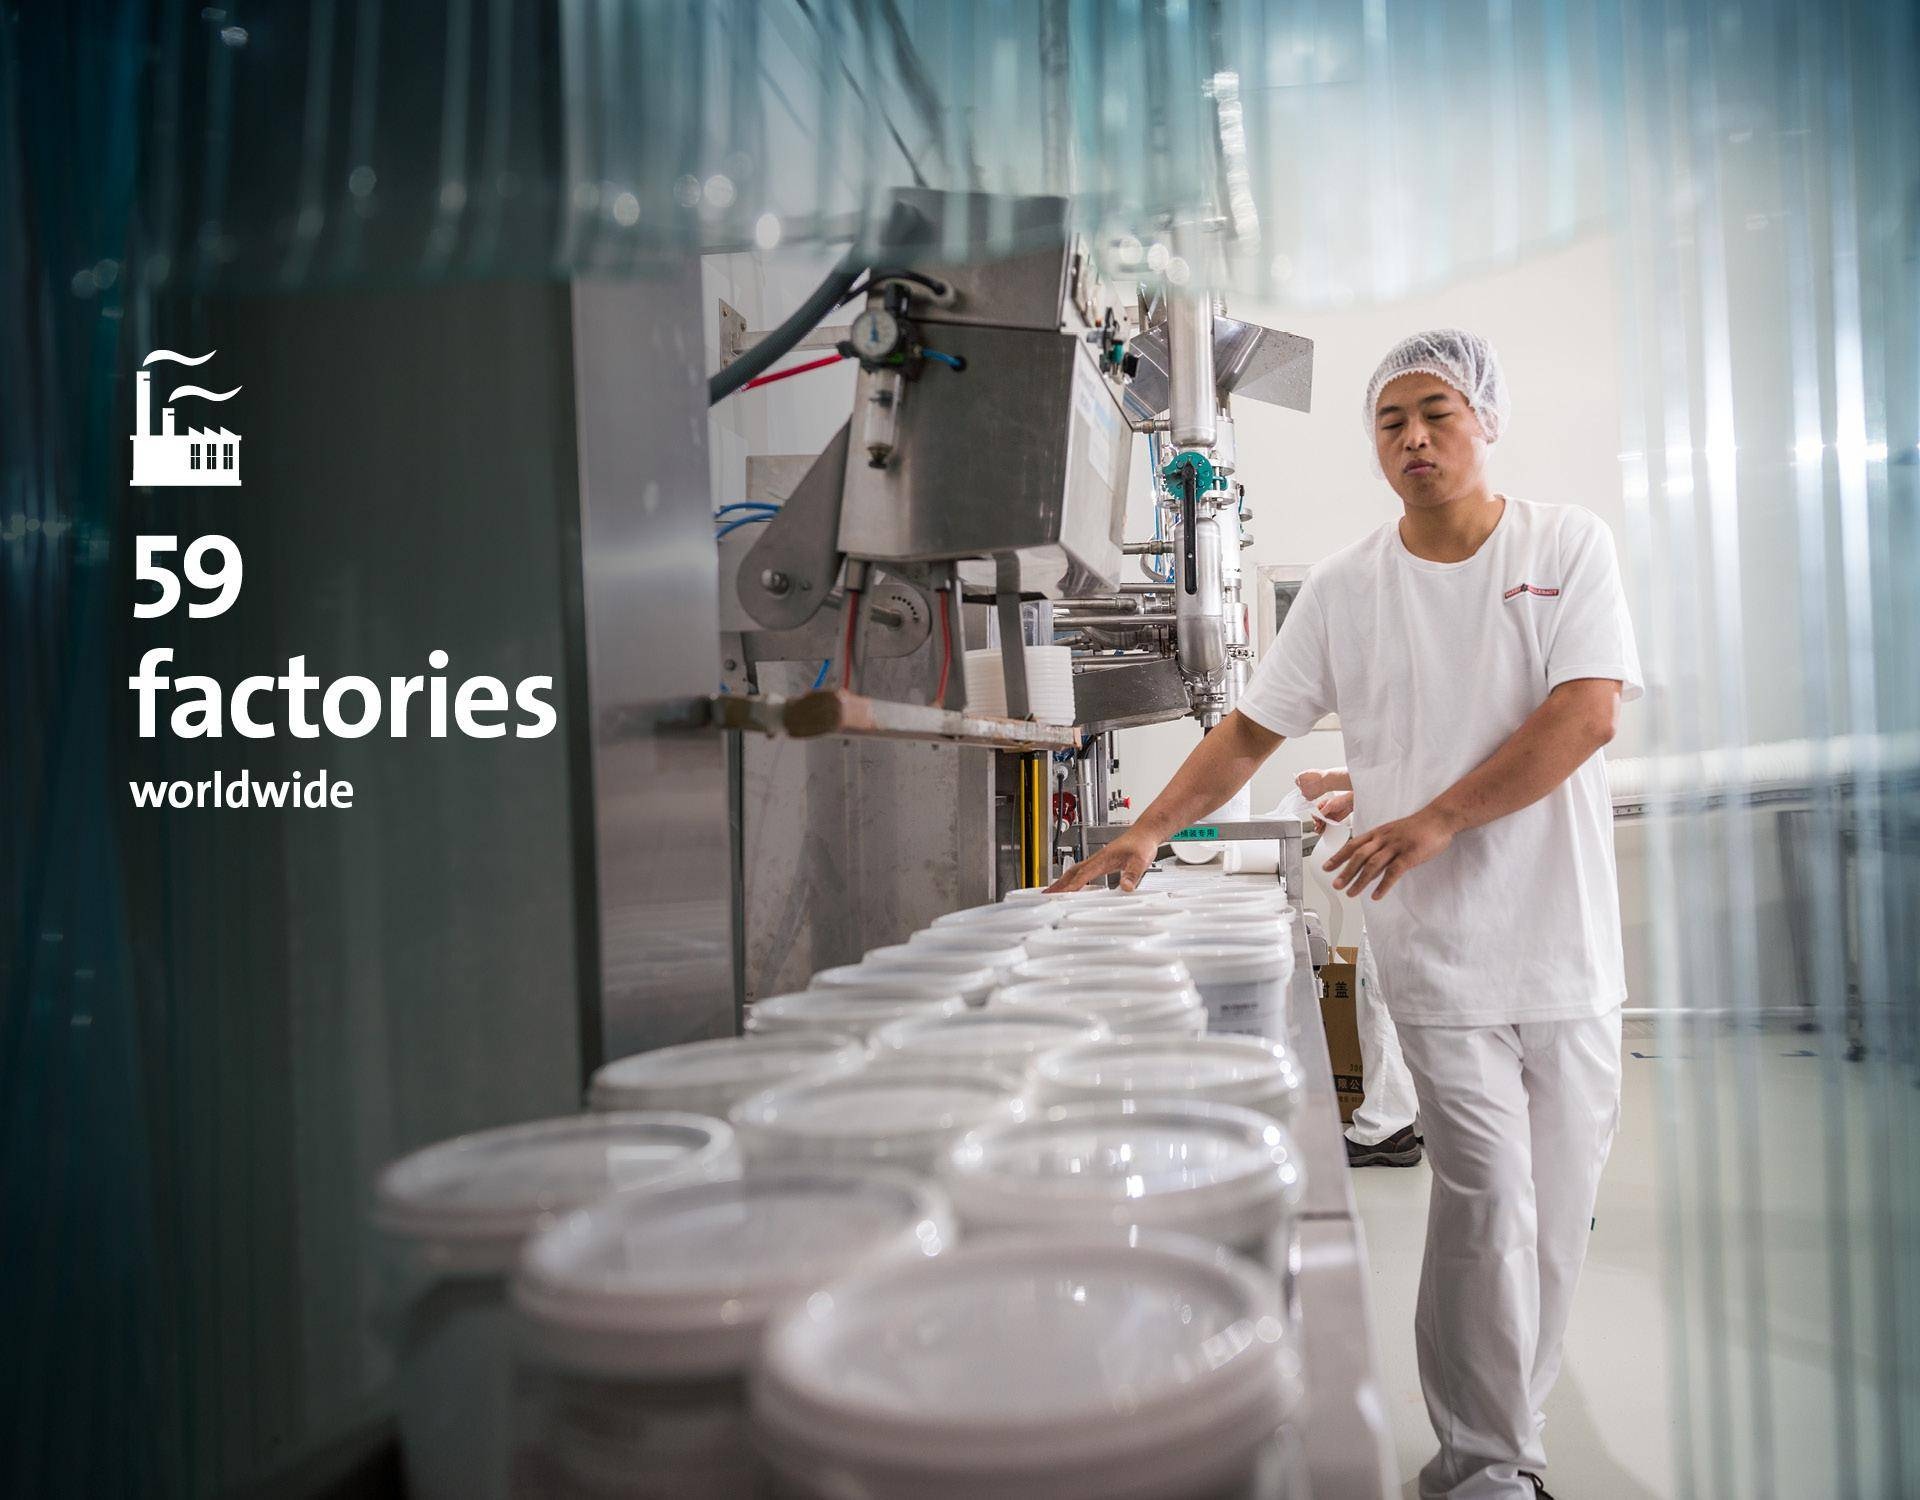 Image Slider Factories Fiscal Year 2017/18 Barry Callebaut Group